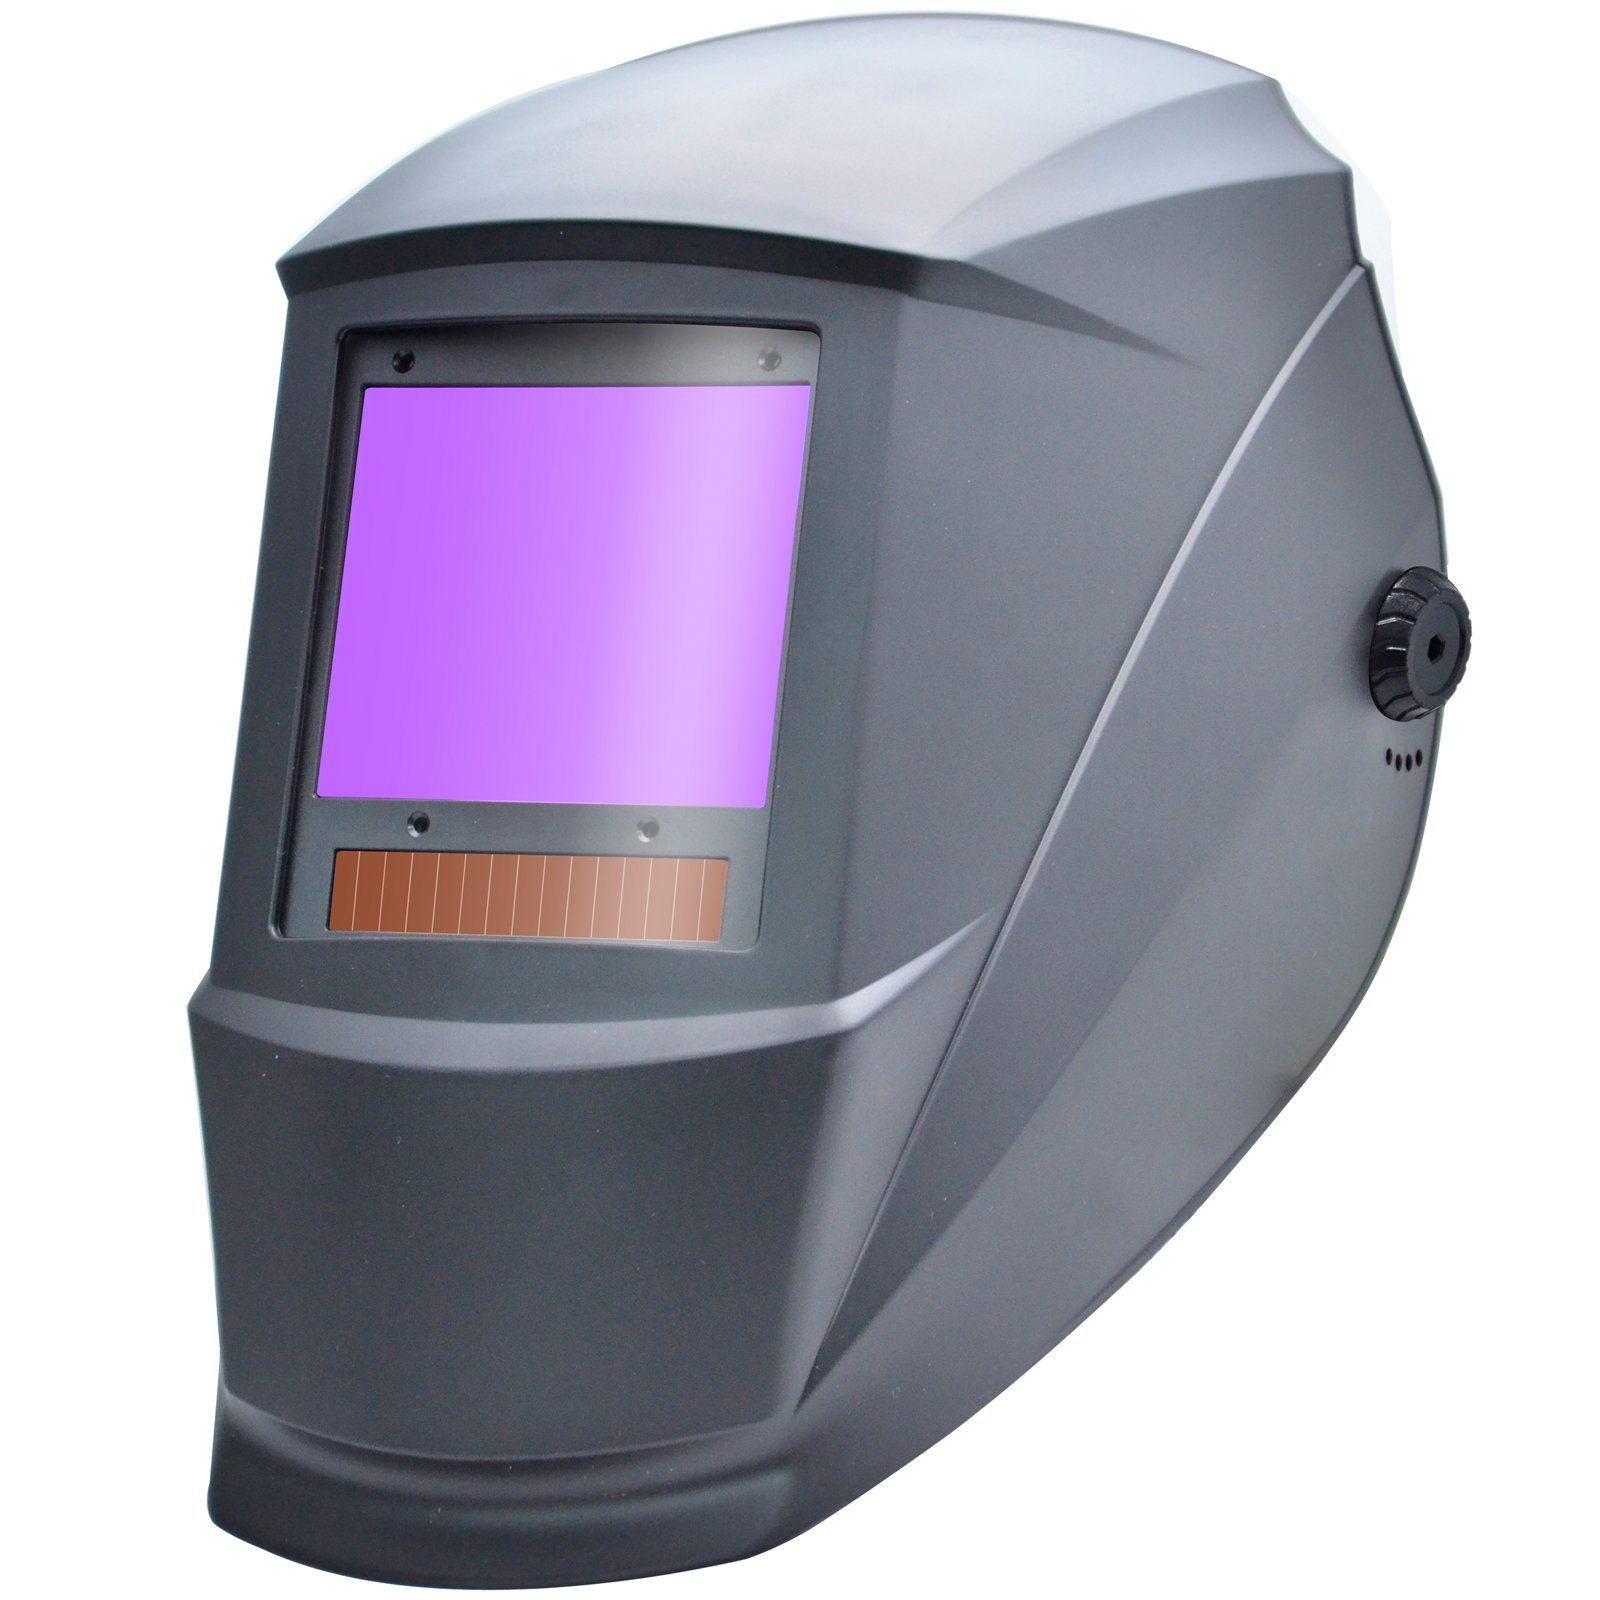 Antra AH7-X90-0000 TOP Optical Class 1/1/1/1 Digital Controlled Solar Powered Auto Darkening Welding Helmet Wide Shade 4/5-9/9-13 With Grinding Feature Extra Lens Covers Great for TIG, MIG, MMA,Plasma